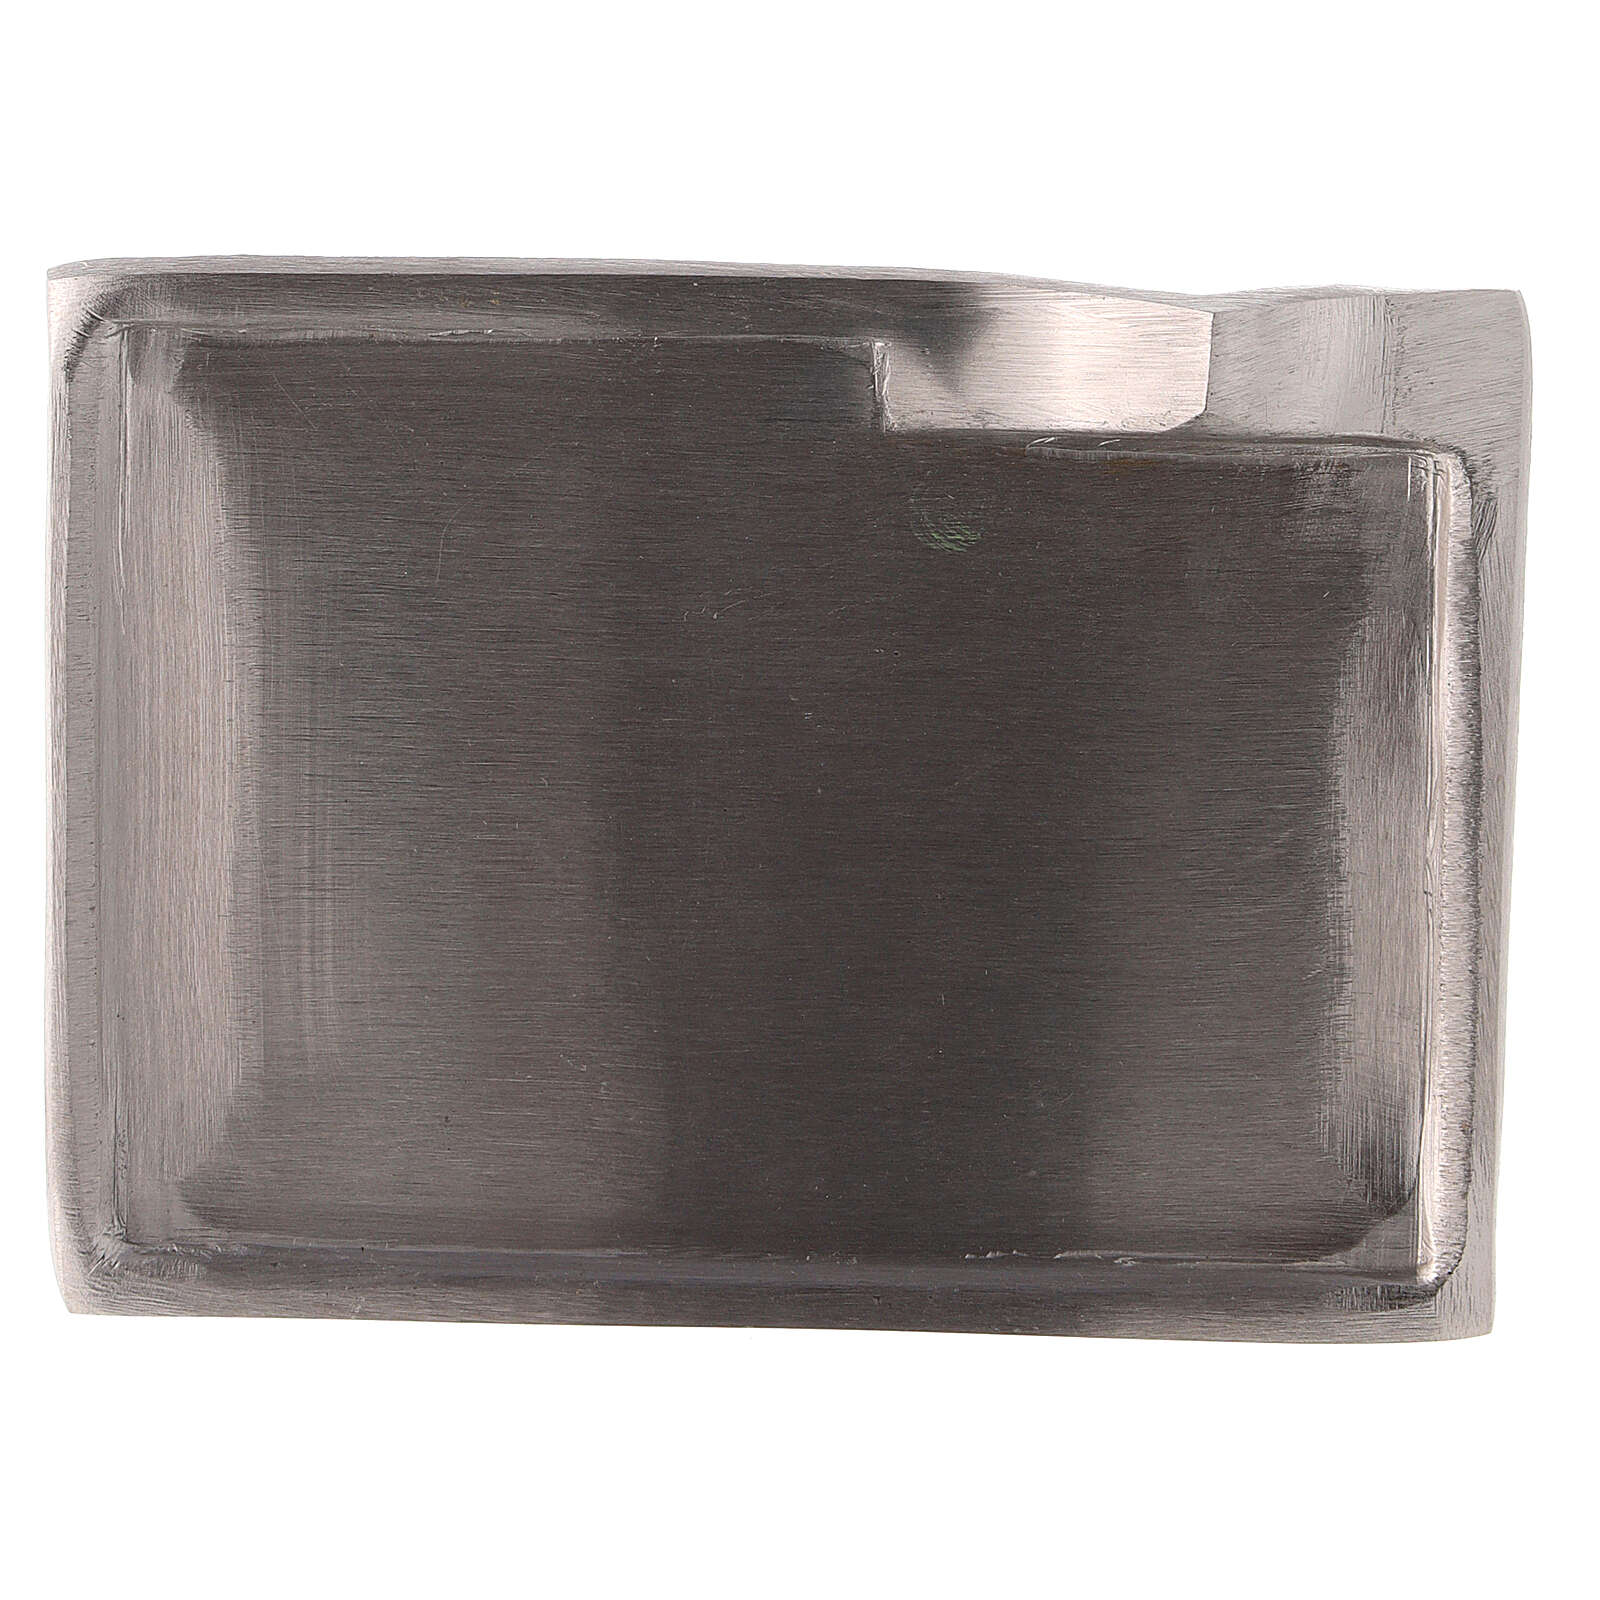 Nickel-plated brass candle holder plate with raised details 3 1/2x2 1/2 in 3